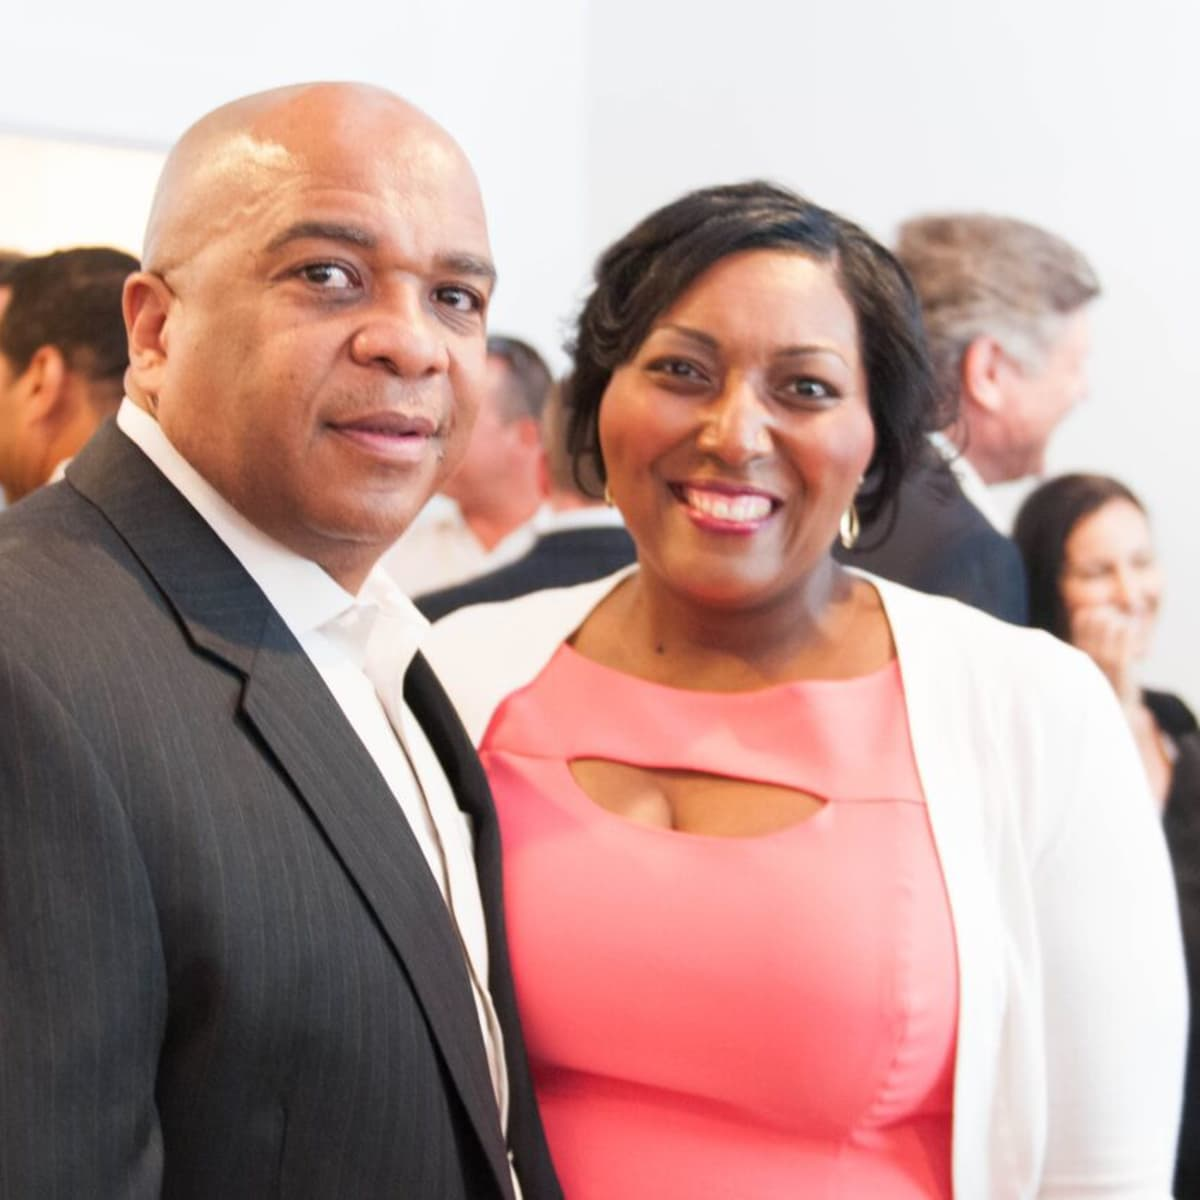 Houston, Engel and Völkers Launch Party, June 2015, Pierre Chatman Sr., Chantera Chatman